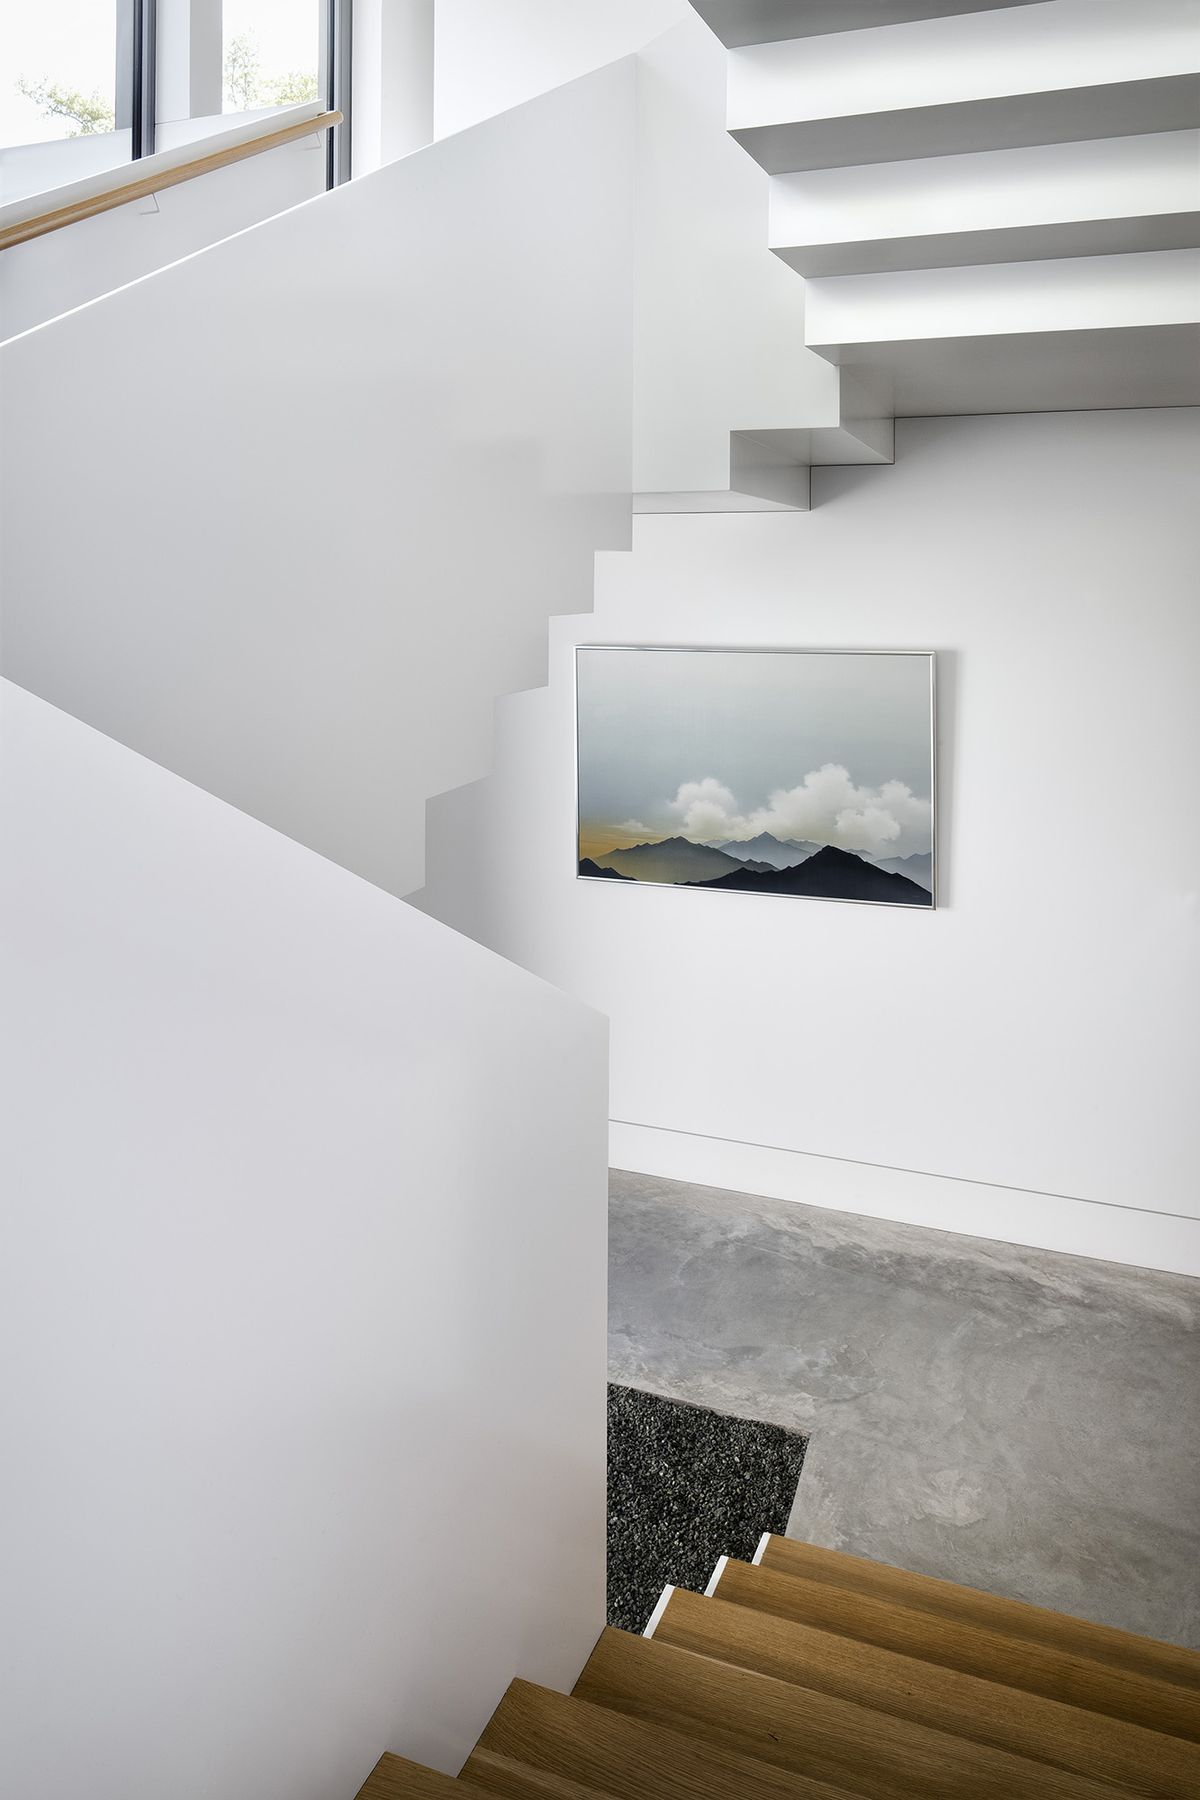 Staircase with white walls and oak steps